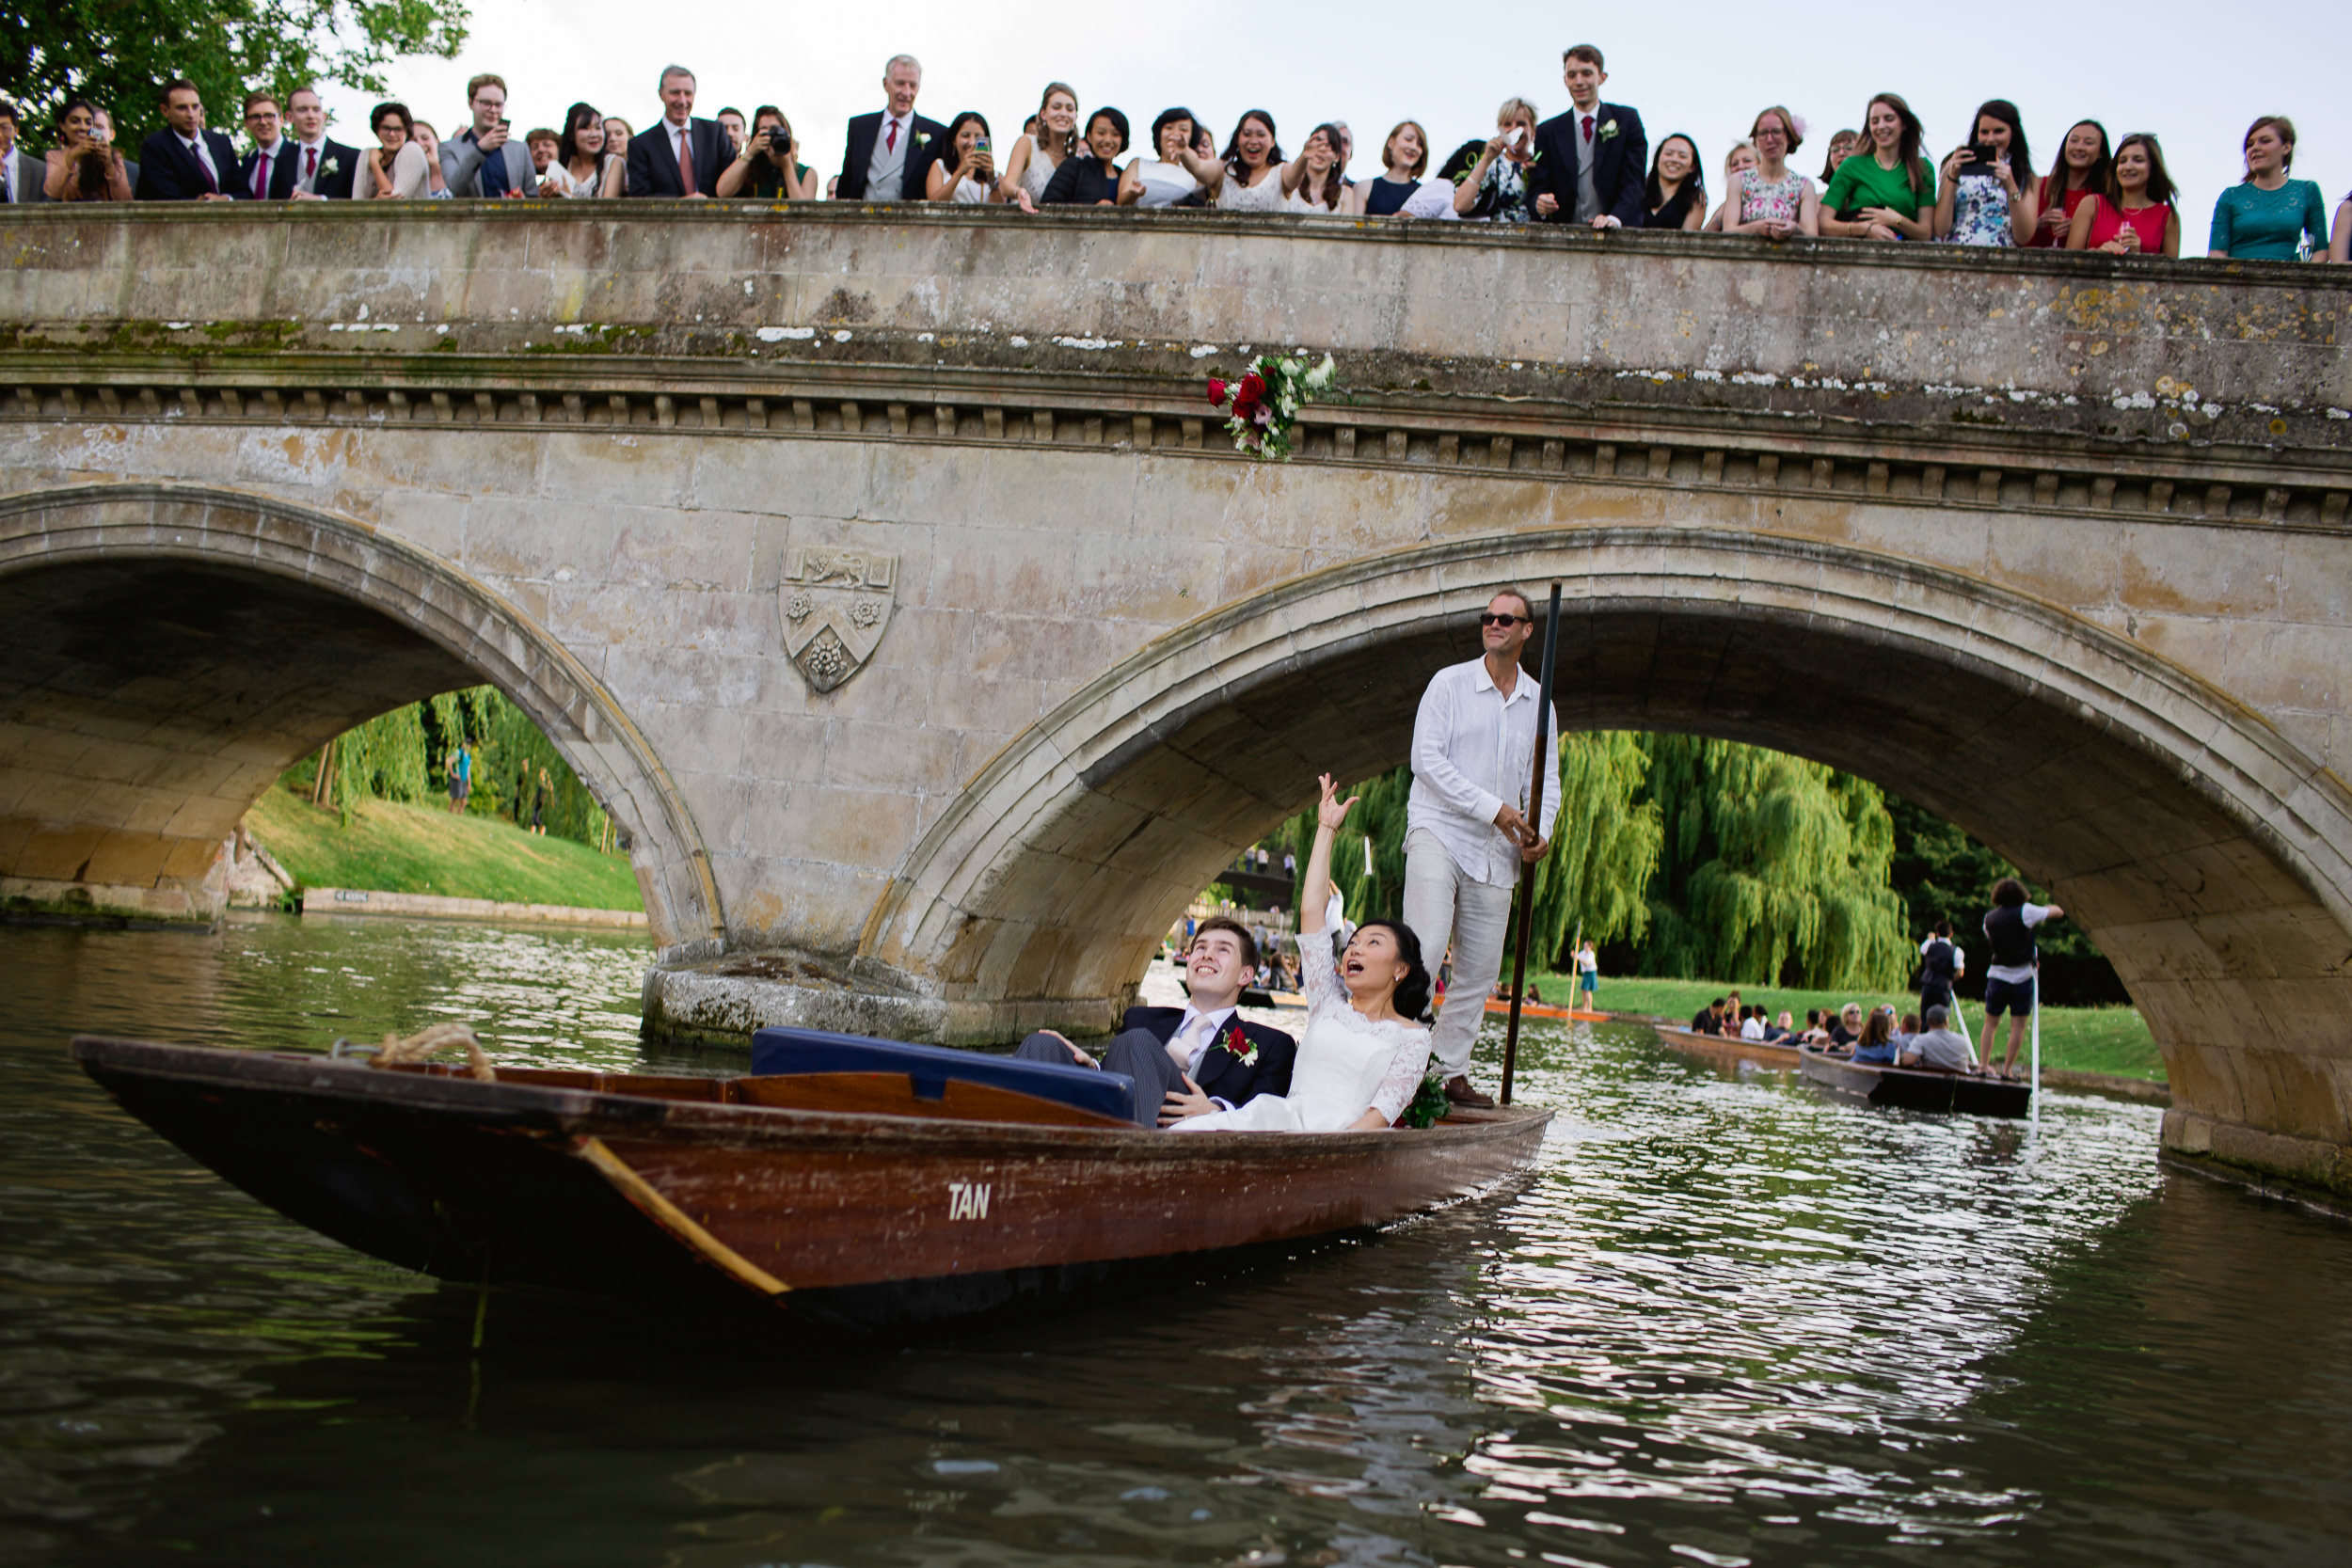 wedding bouquet throw - Cambridge wedding - bride and groom in a punt - Cambridge wedding